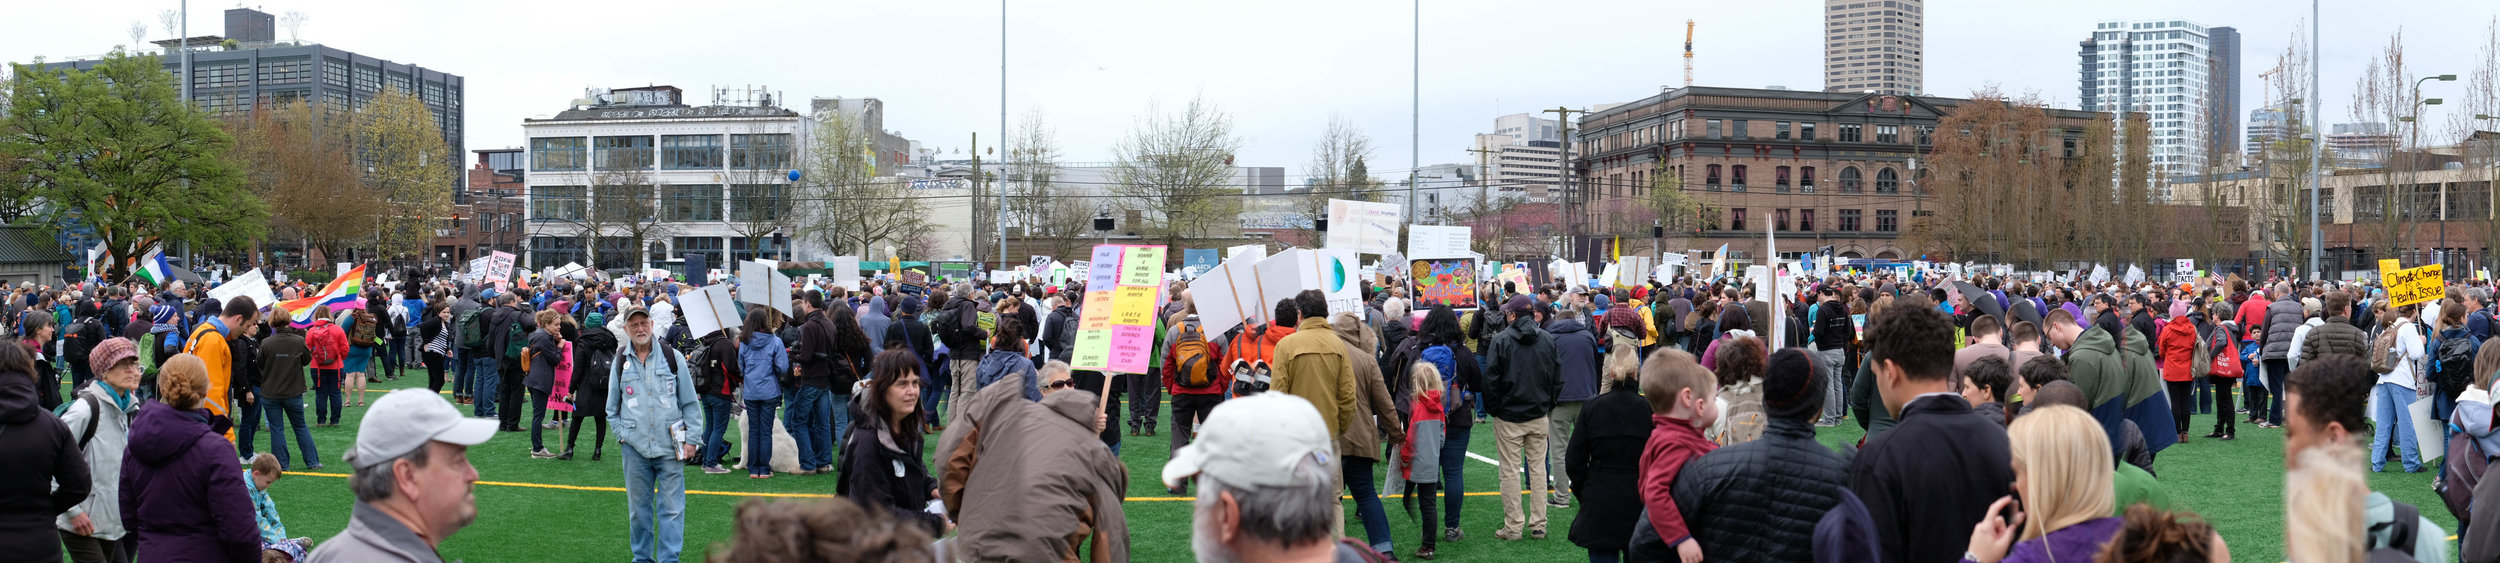 Seattle March for Science-15